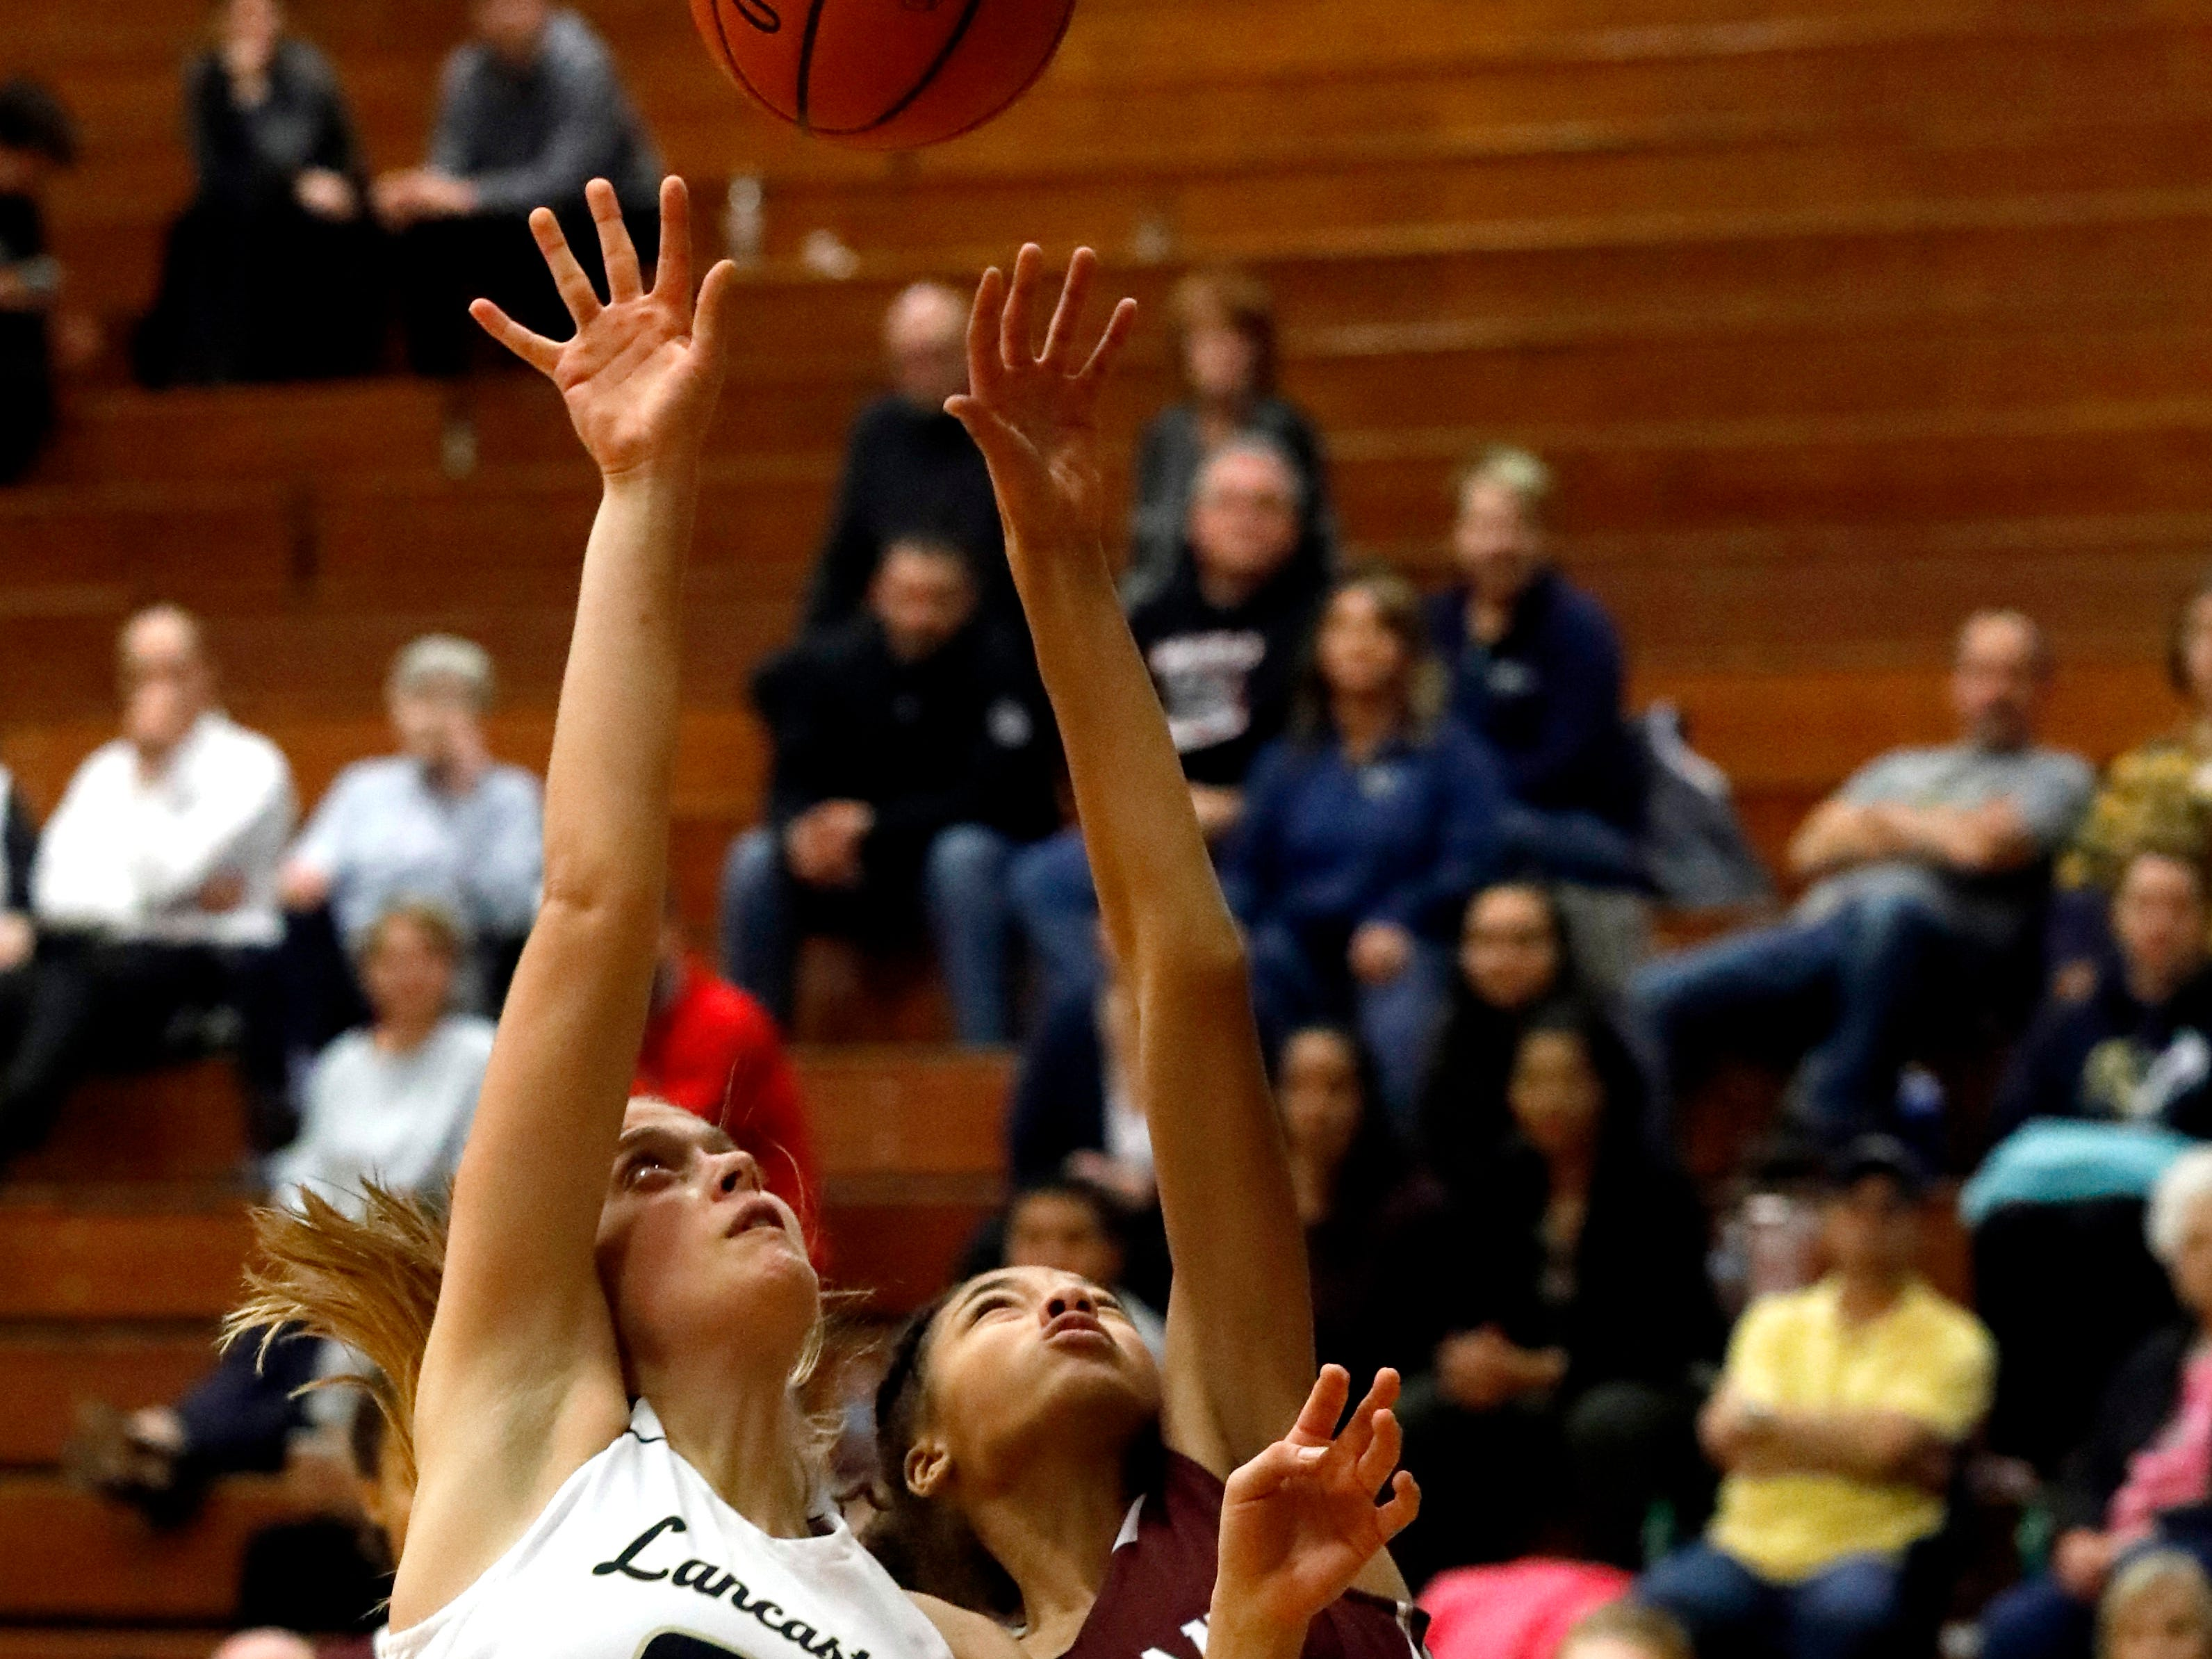 Lancaster's Anna Hartig and Canal Winchester's Kaylee DeShong fight for a rebound Tuesday night, Jan. 8, 2019, at Lancaster High School in Lancaster. The Golden Gales lost the game 50-40.